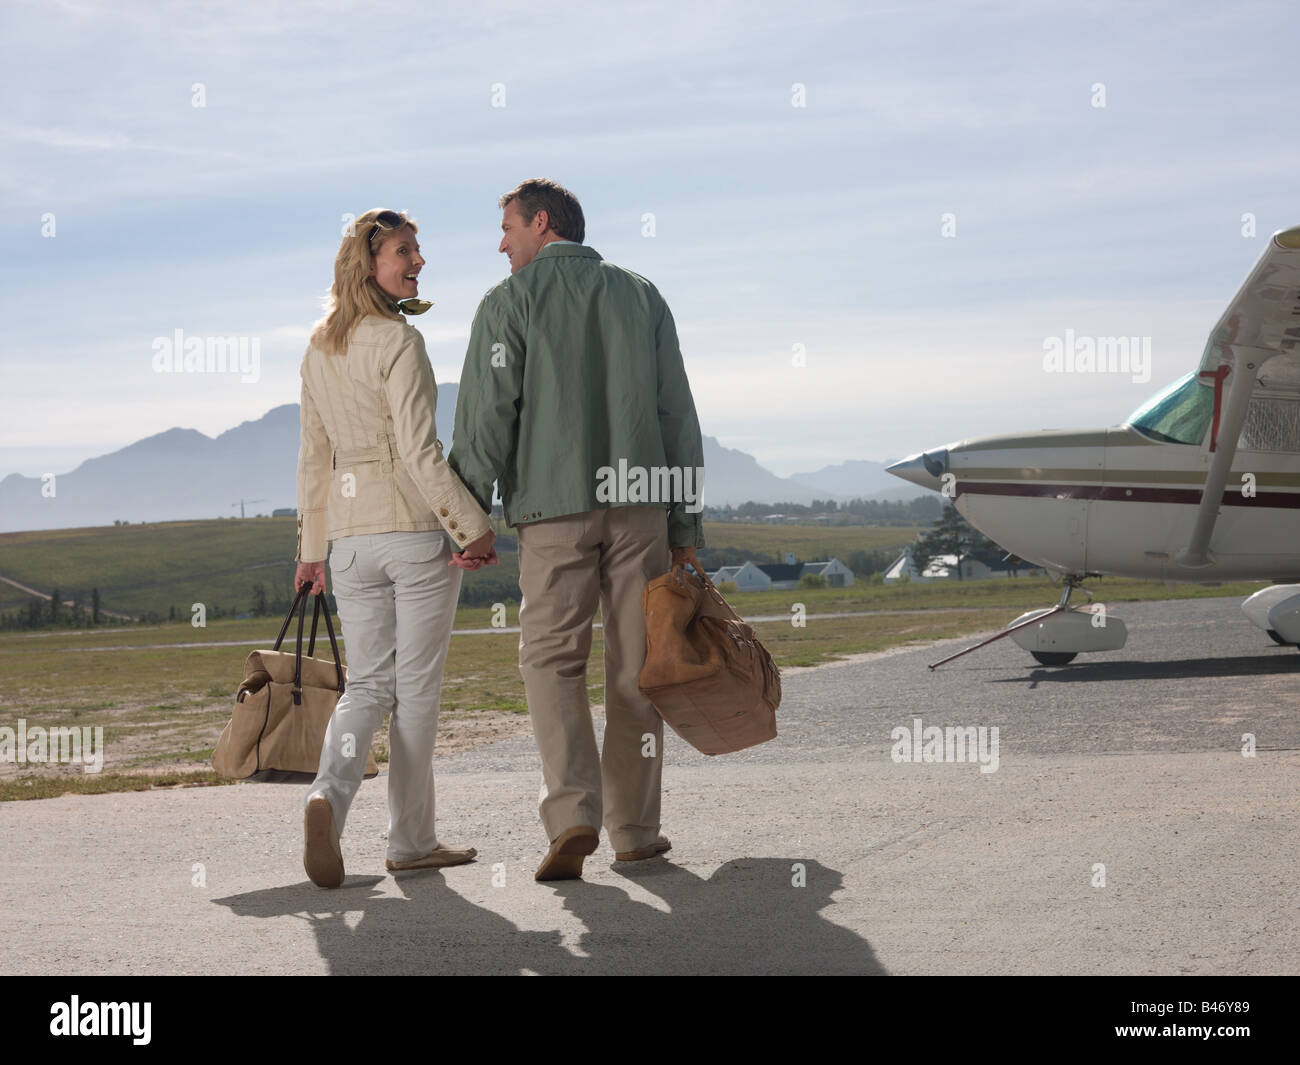 Couple by private aeroplane - Stock Image